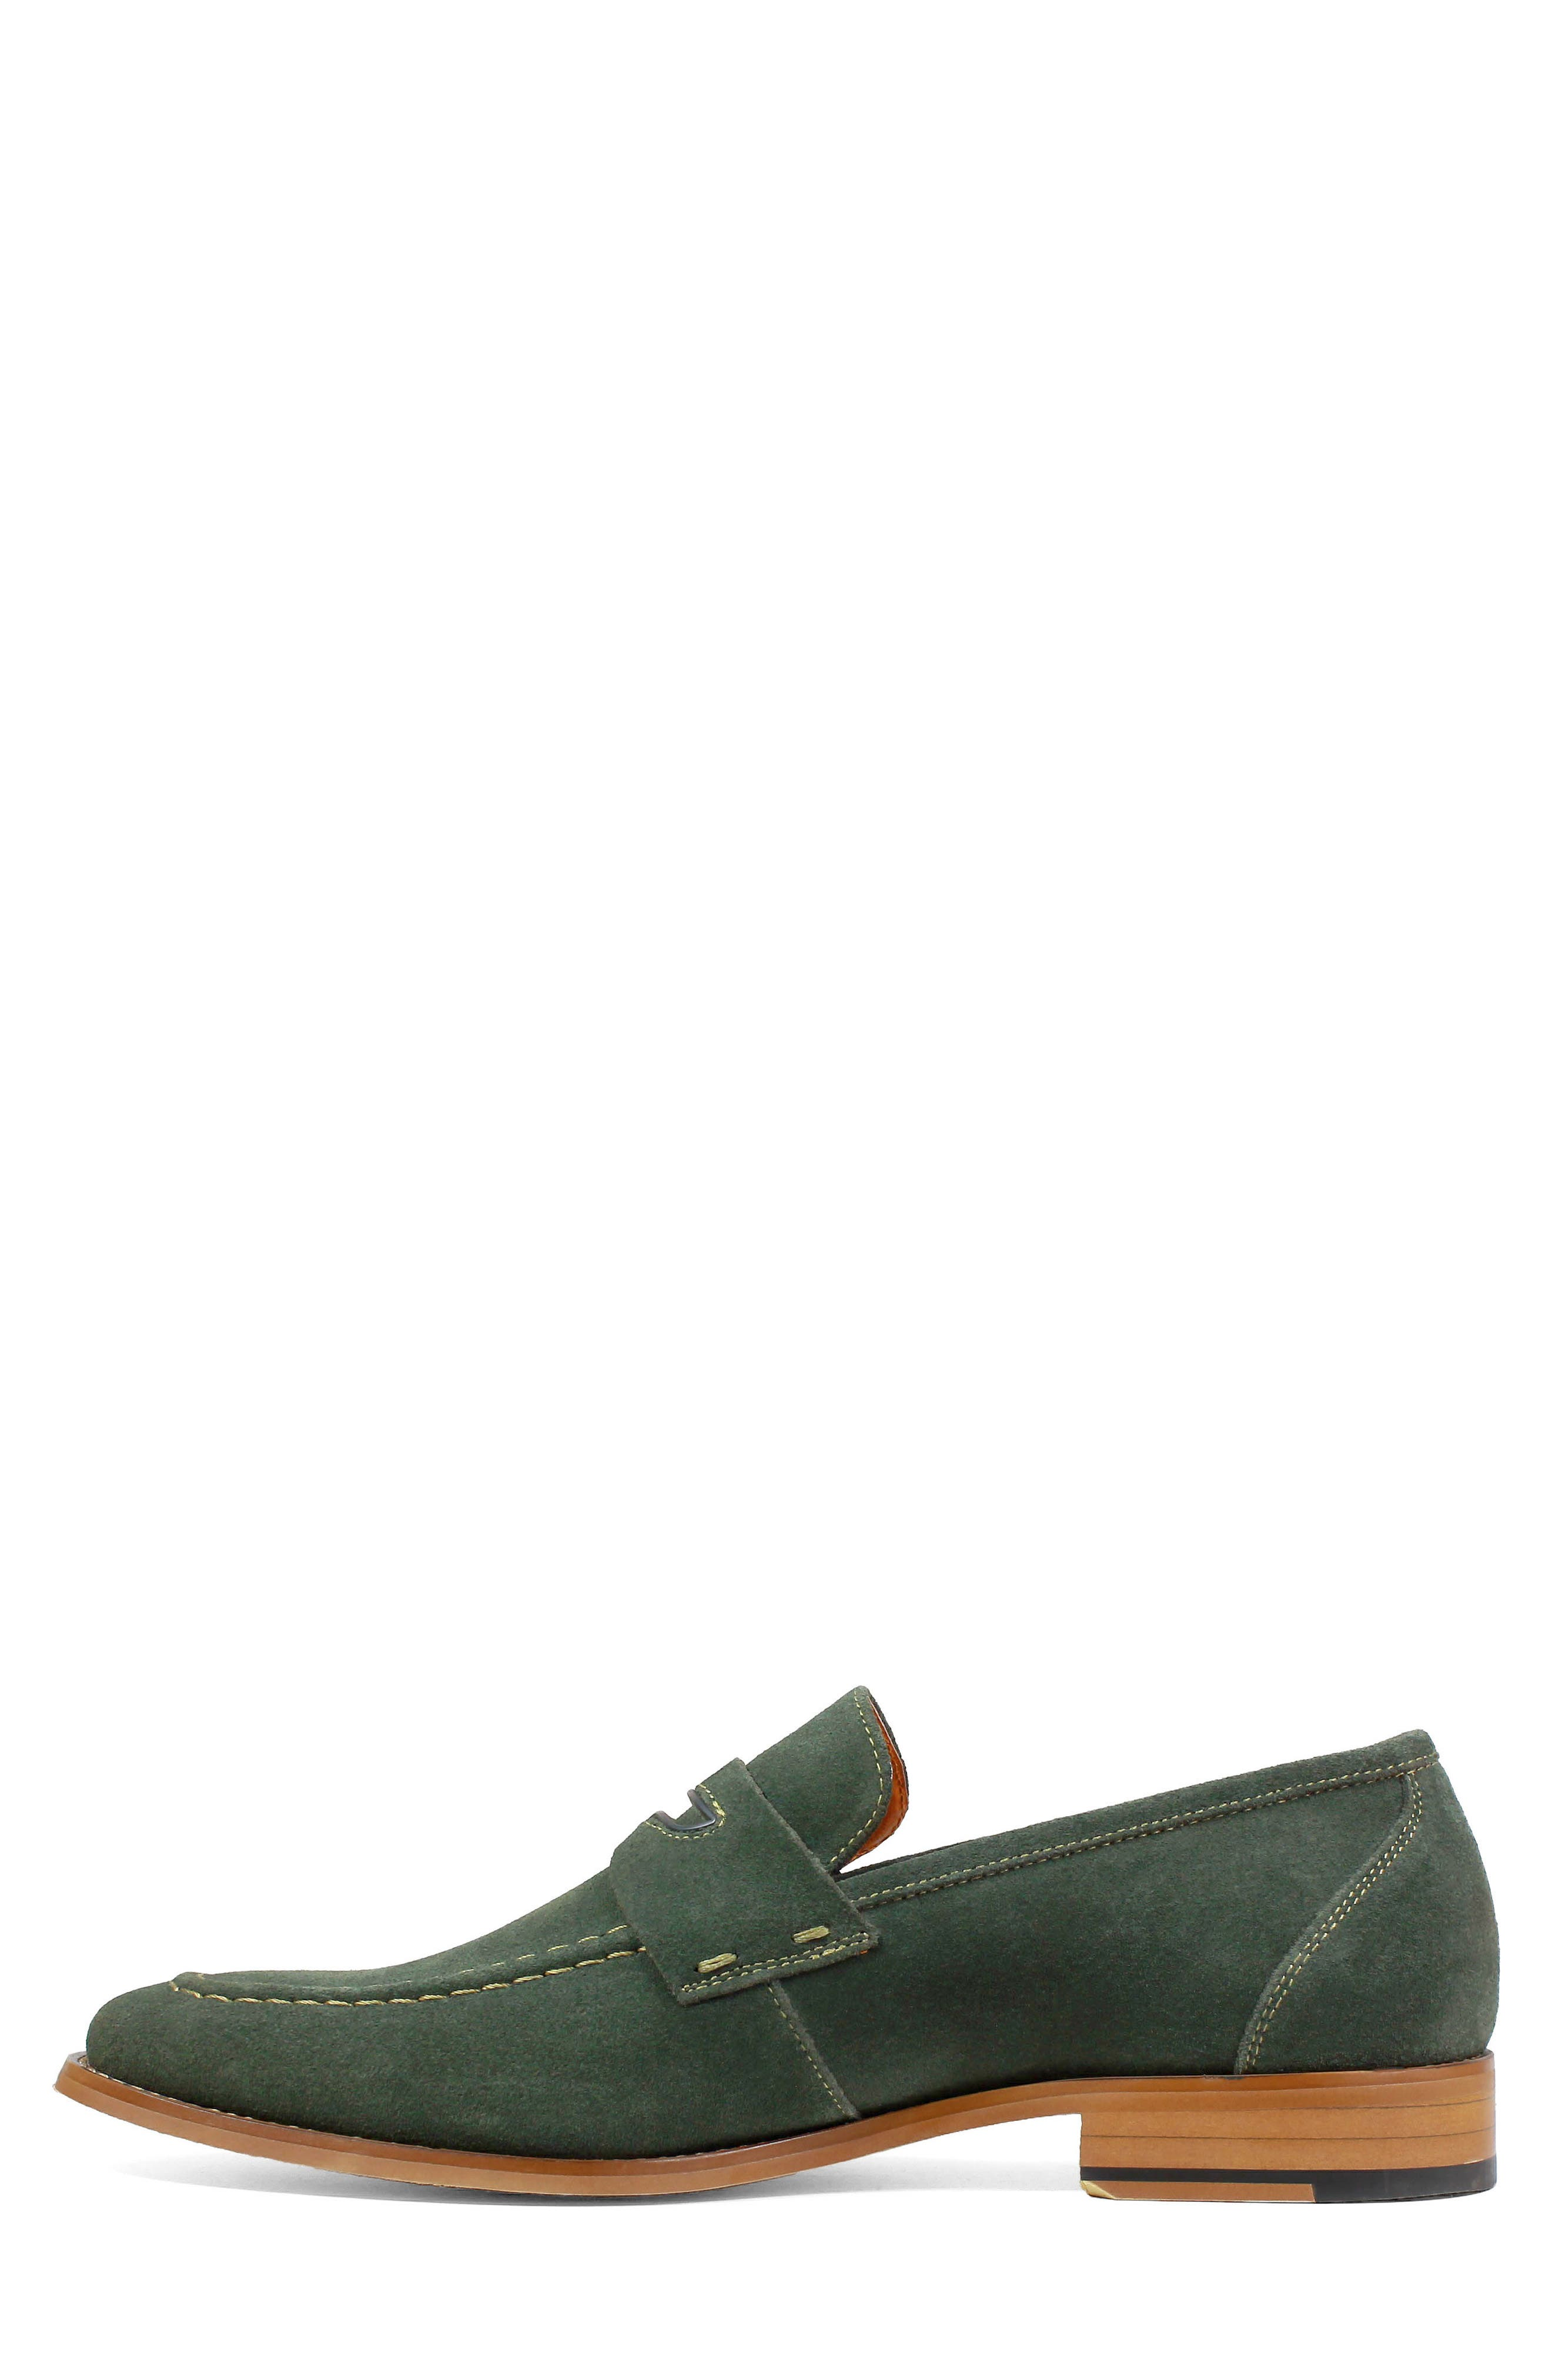 Colfax Apron Toe Penny Loafer,                             Alternate thumbnail 7, color,                             DARK GREEN SUEDE